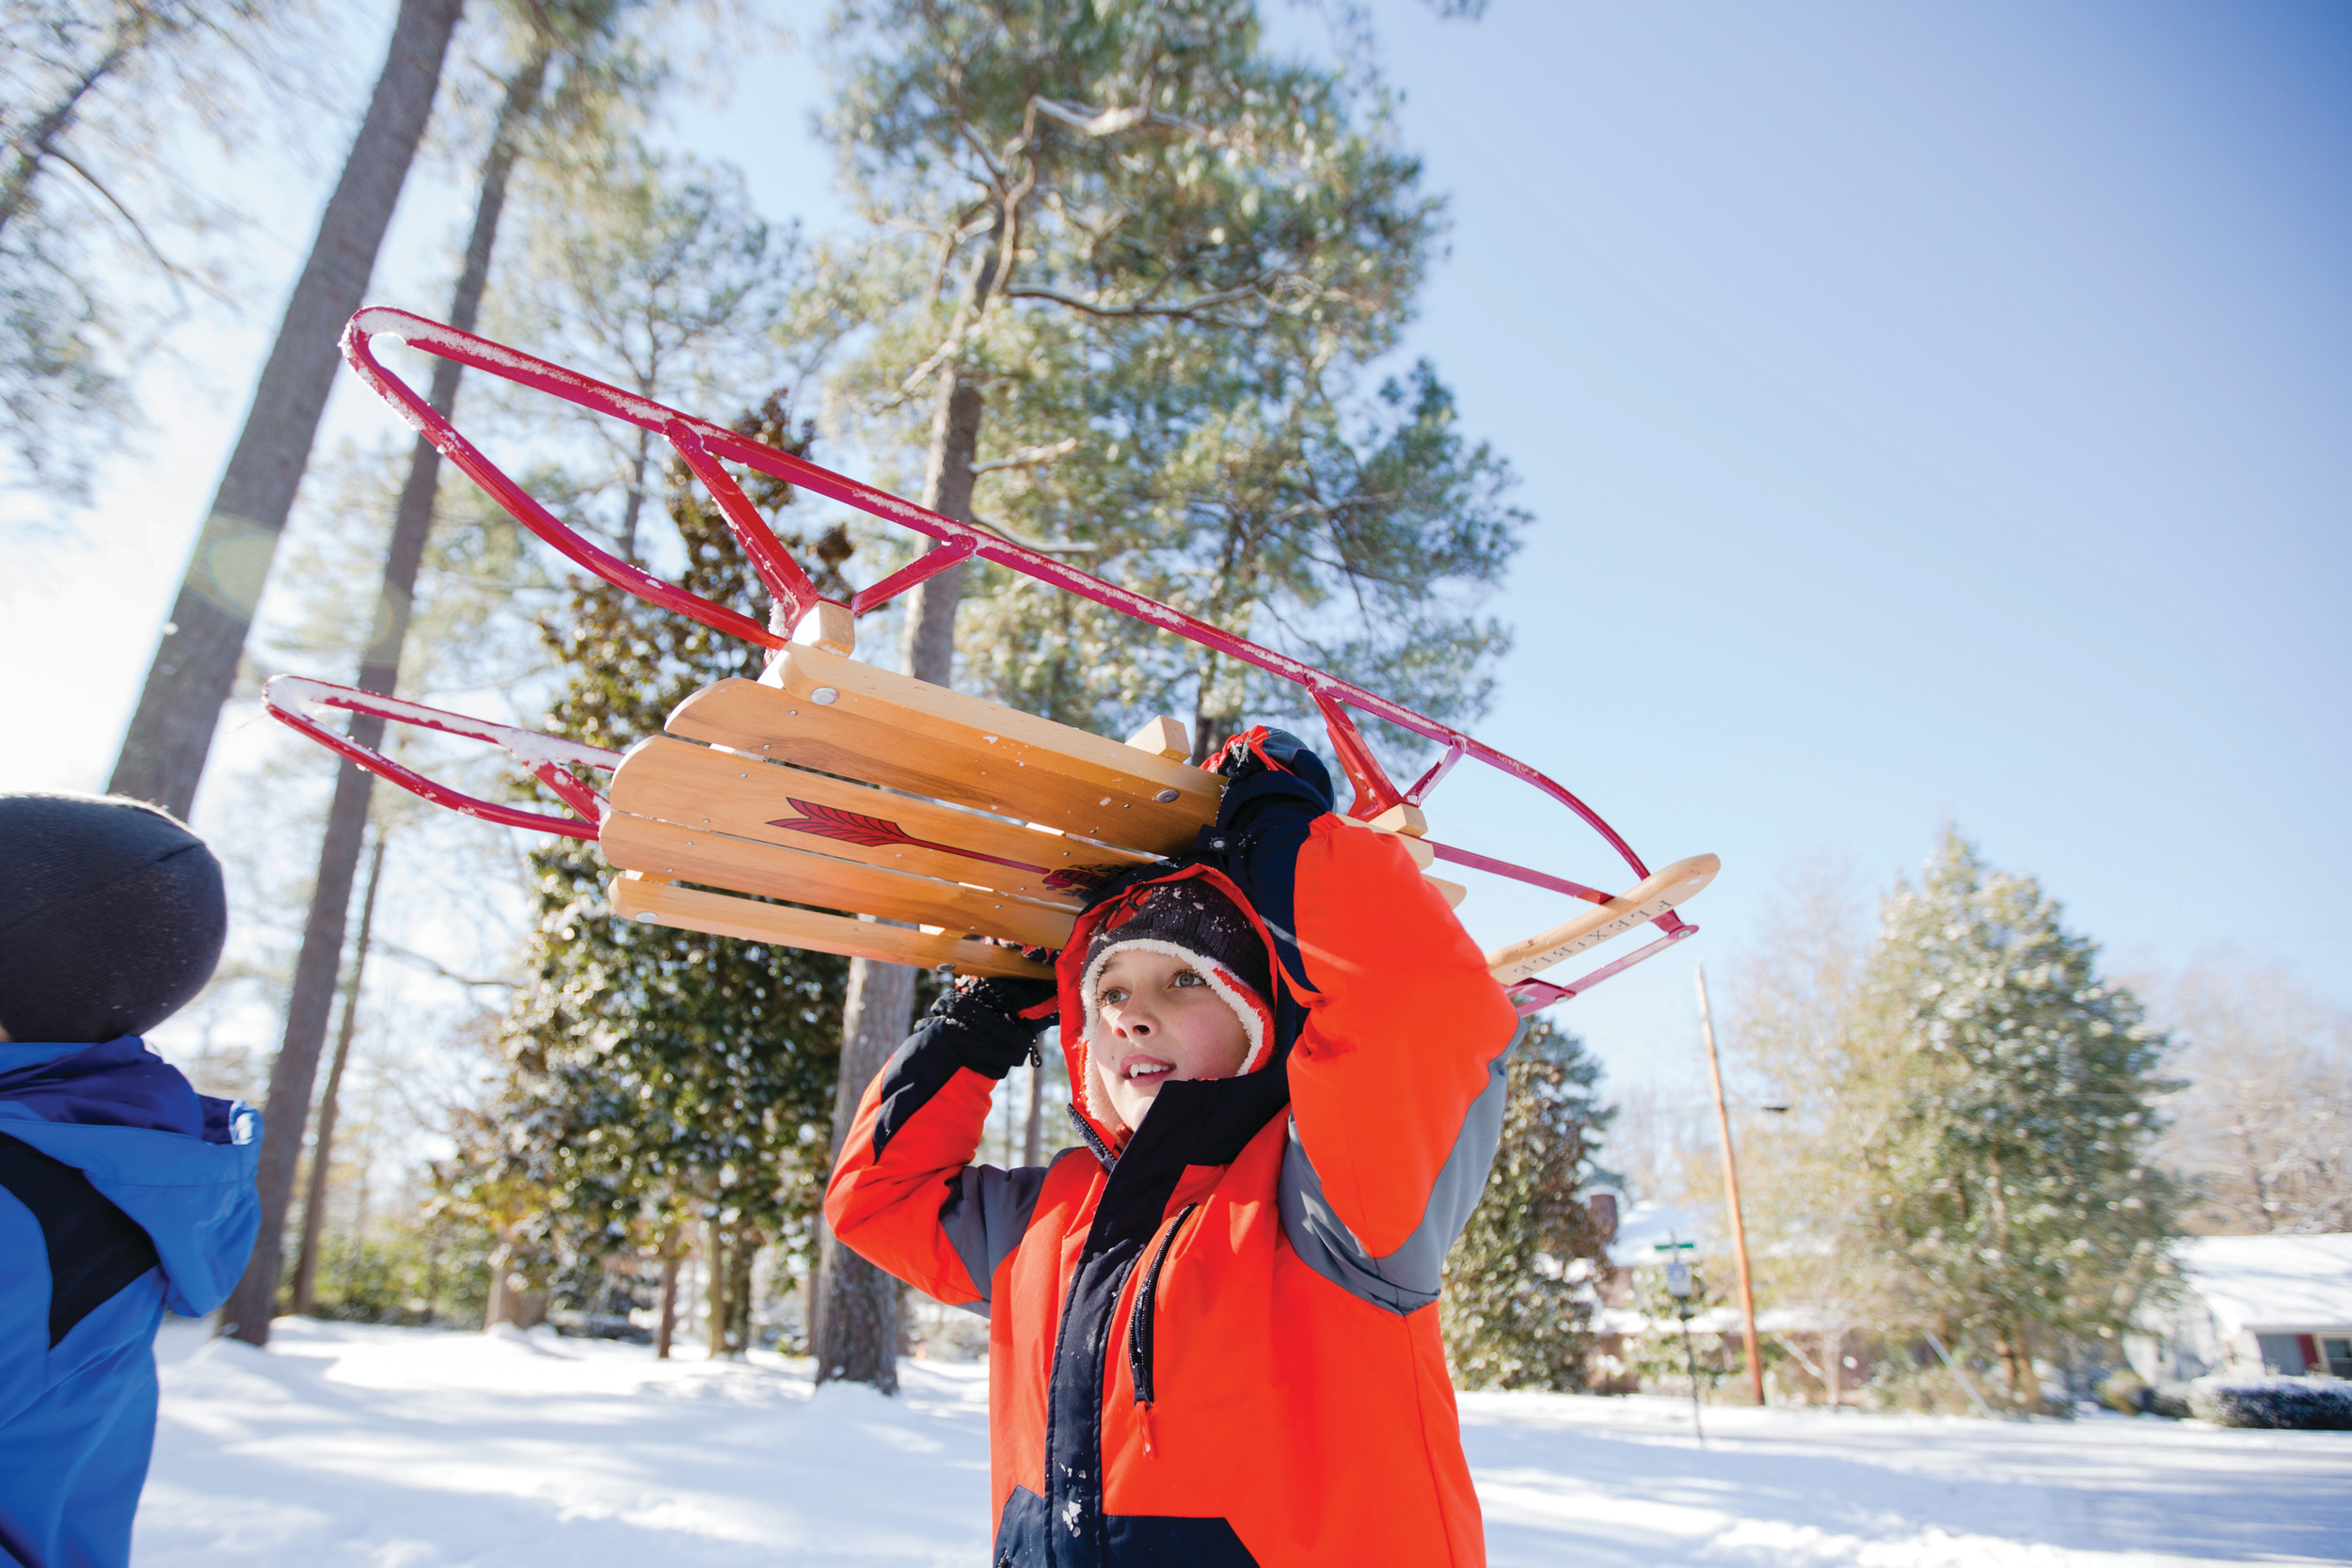 Banks Smith, 9, hauls a sled down an icy street on Thursday morning in Sumter.